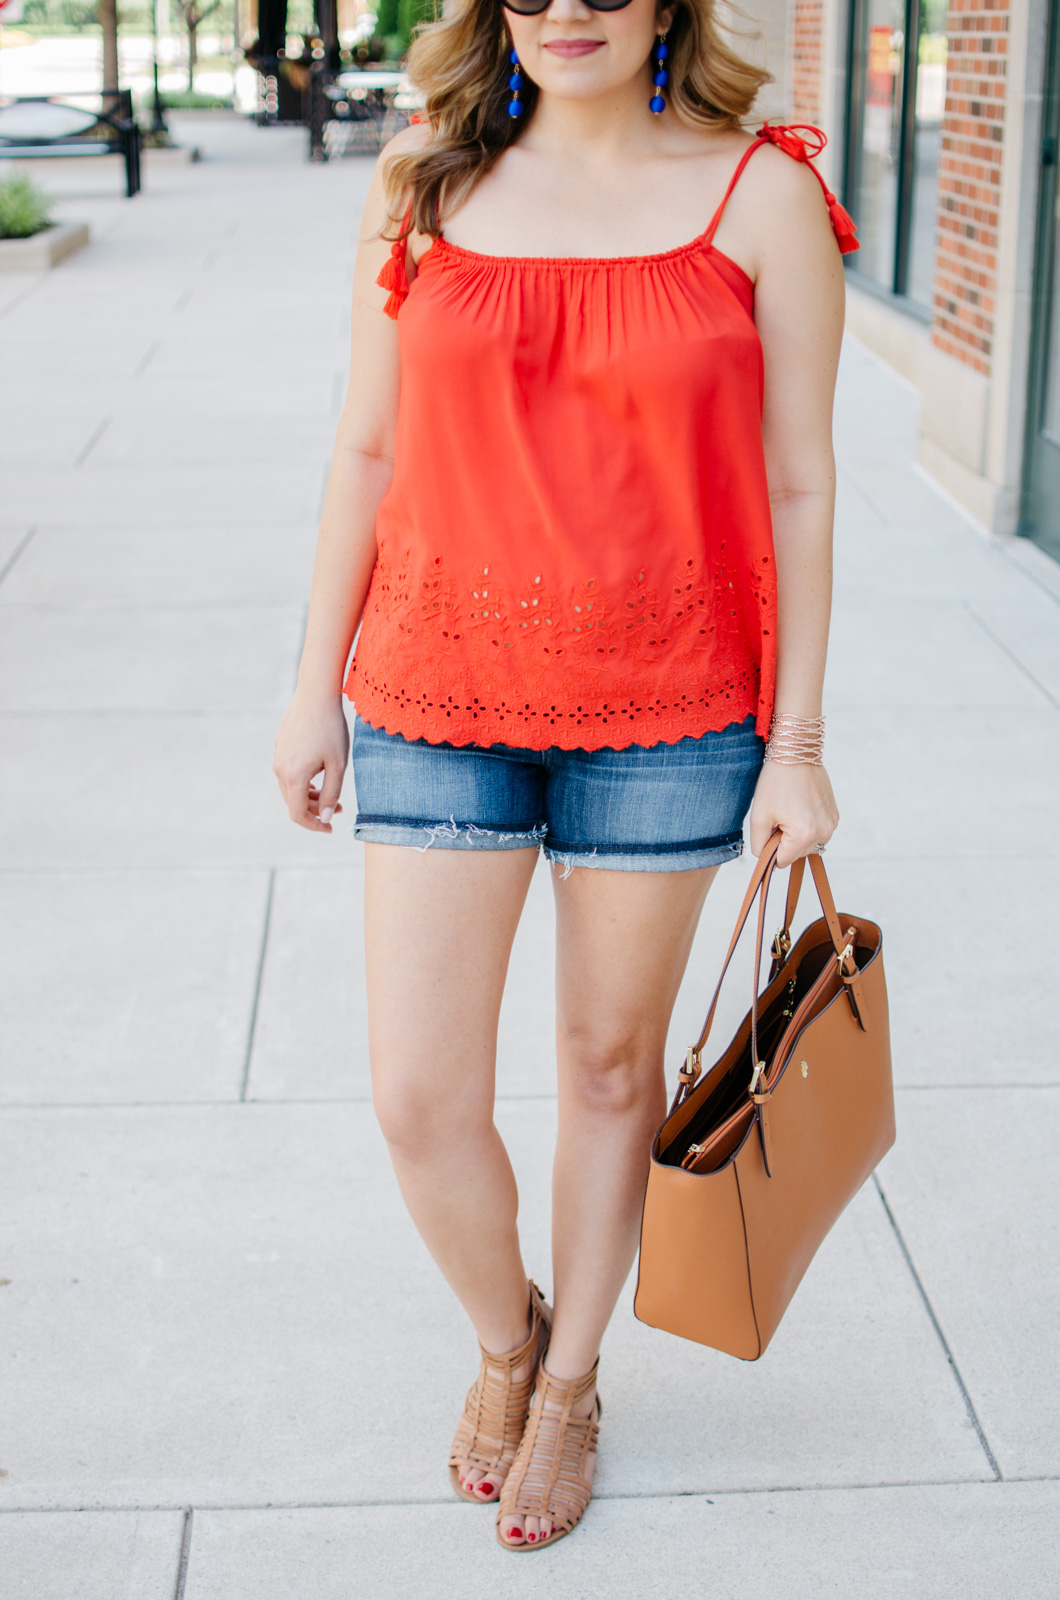 second trimester summer outfit - tassel tank and cutoffs | For more cute maternity outfits, head to bylaurenm.com!